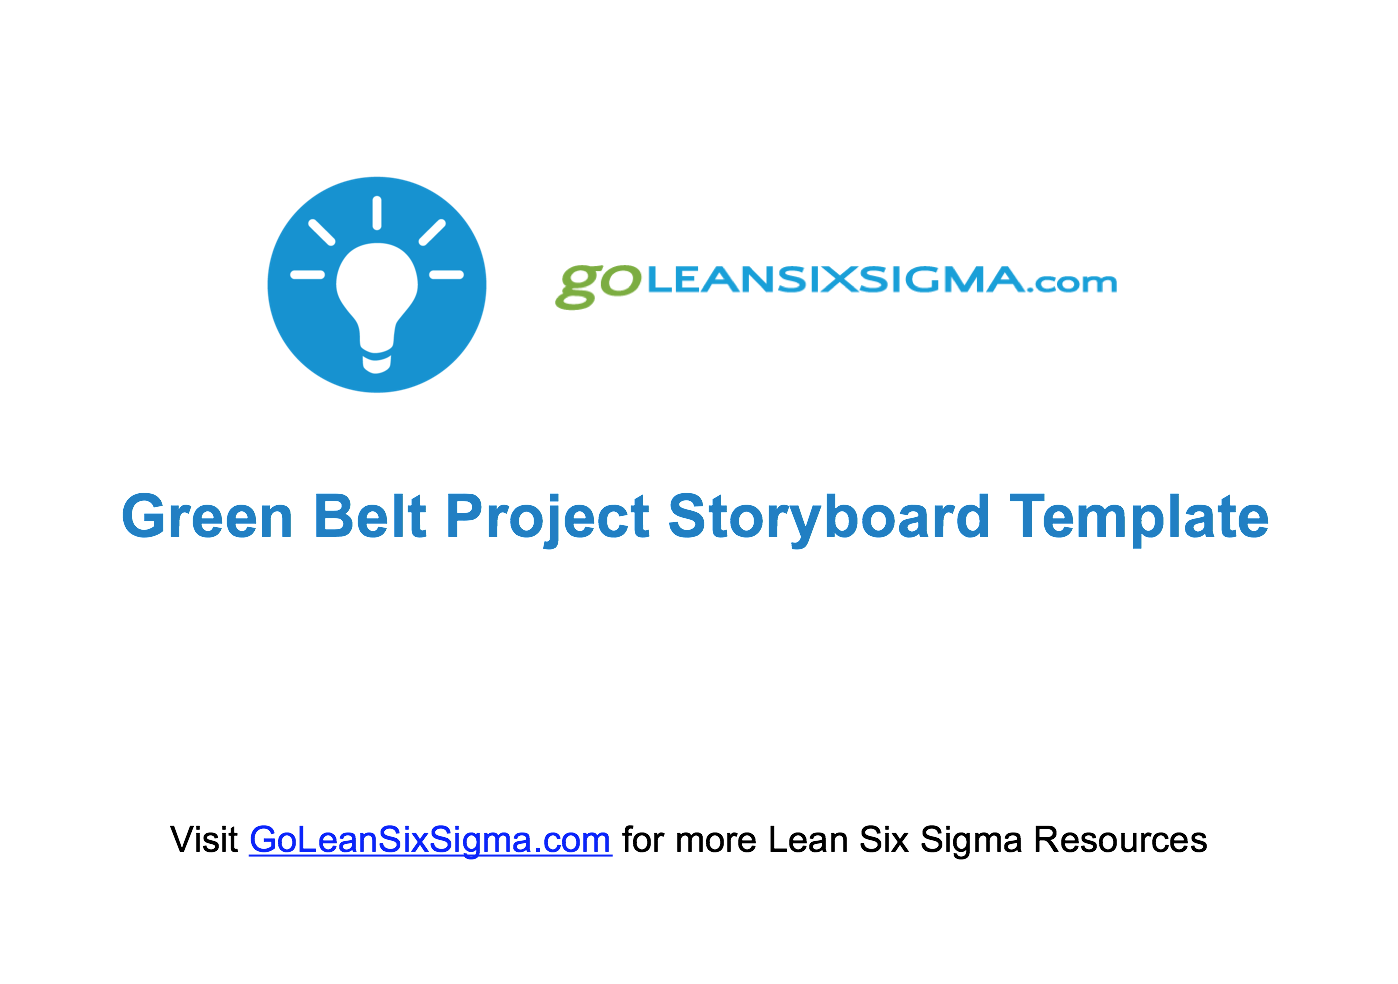 Green Belt Project Storyboard Template